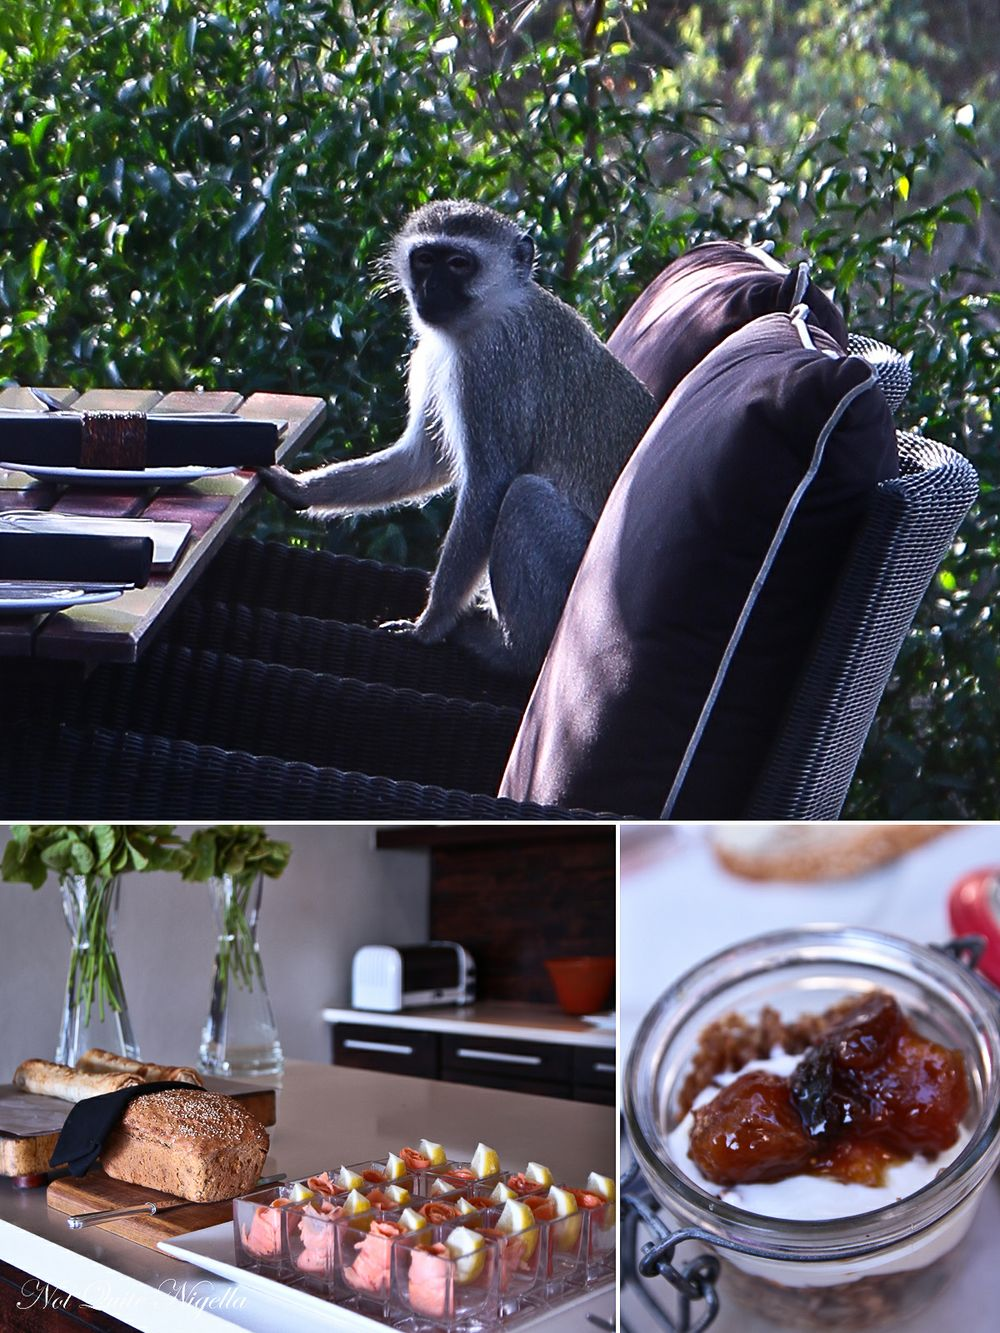 A Food & Animal Safari at Phinda, South Africa